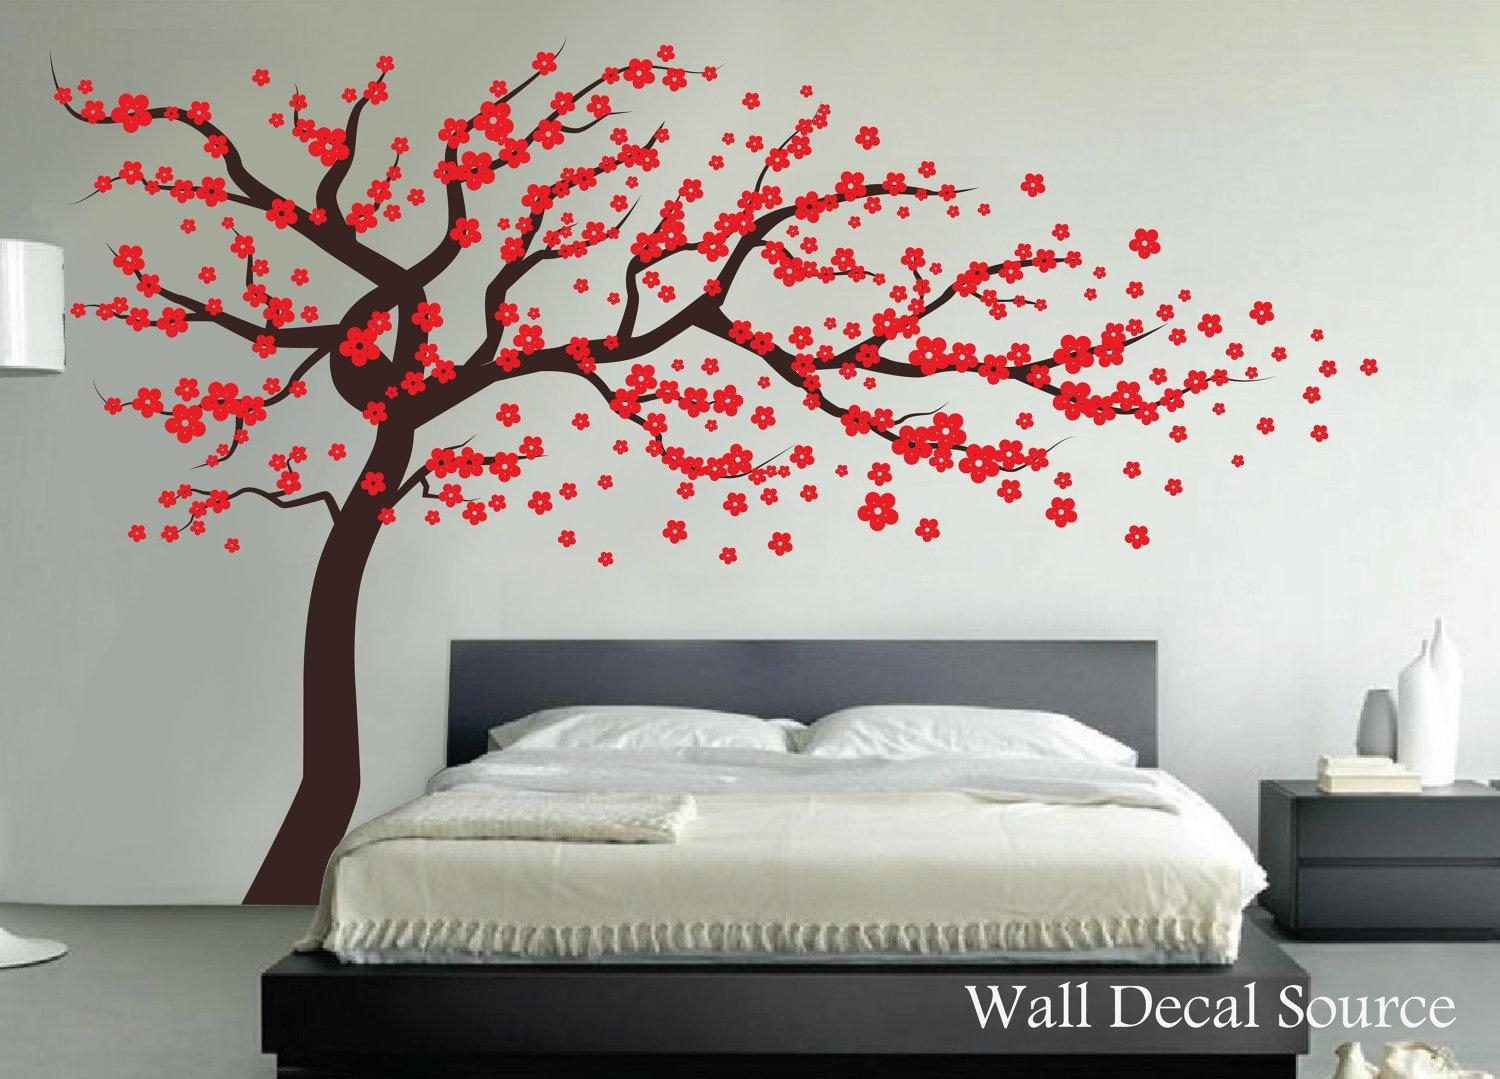 23 Japanese Cherry Blossom Wall Decal, Birds, Flower Cherry For Red Cherry Blossom Wall Art (View 15 of 20)